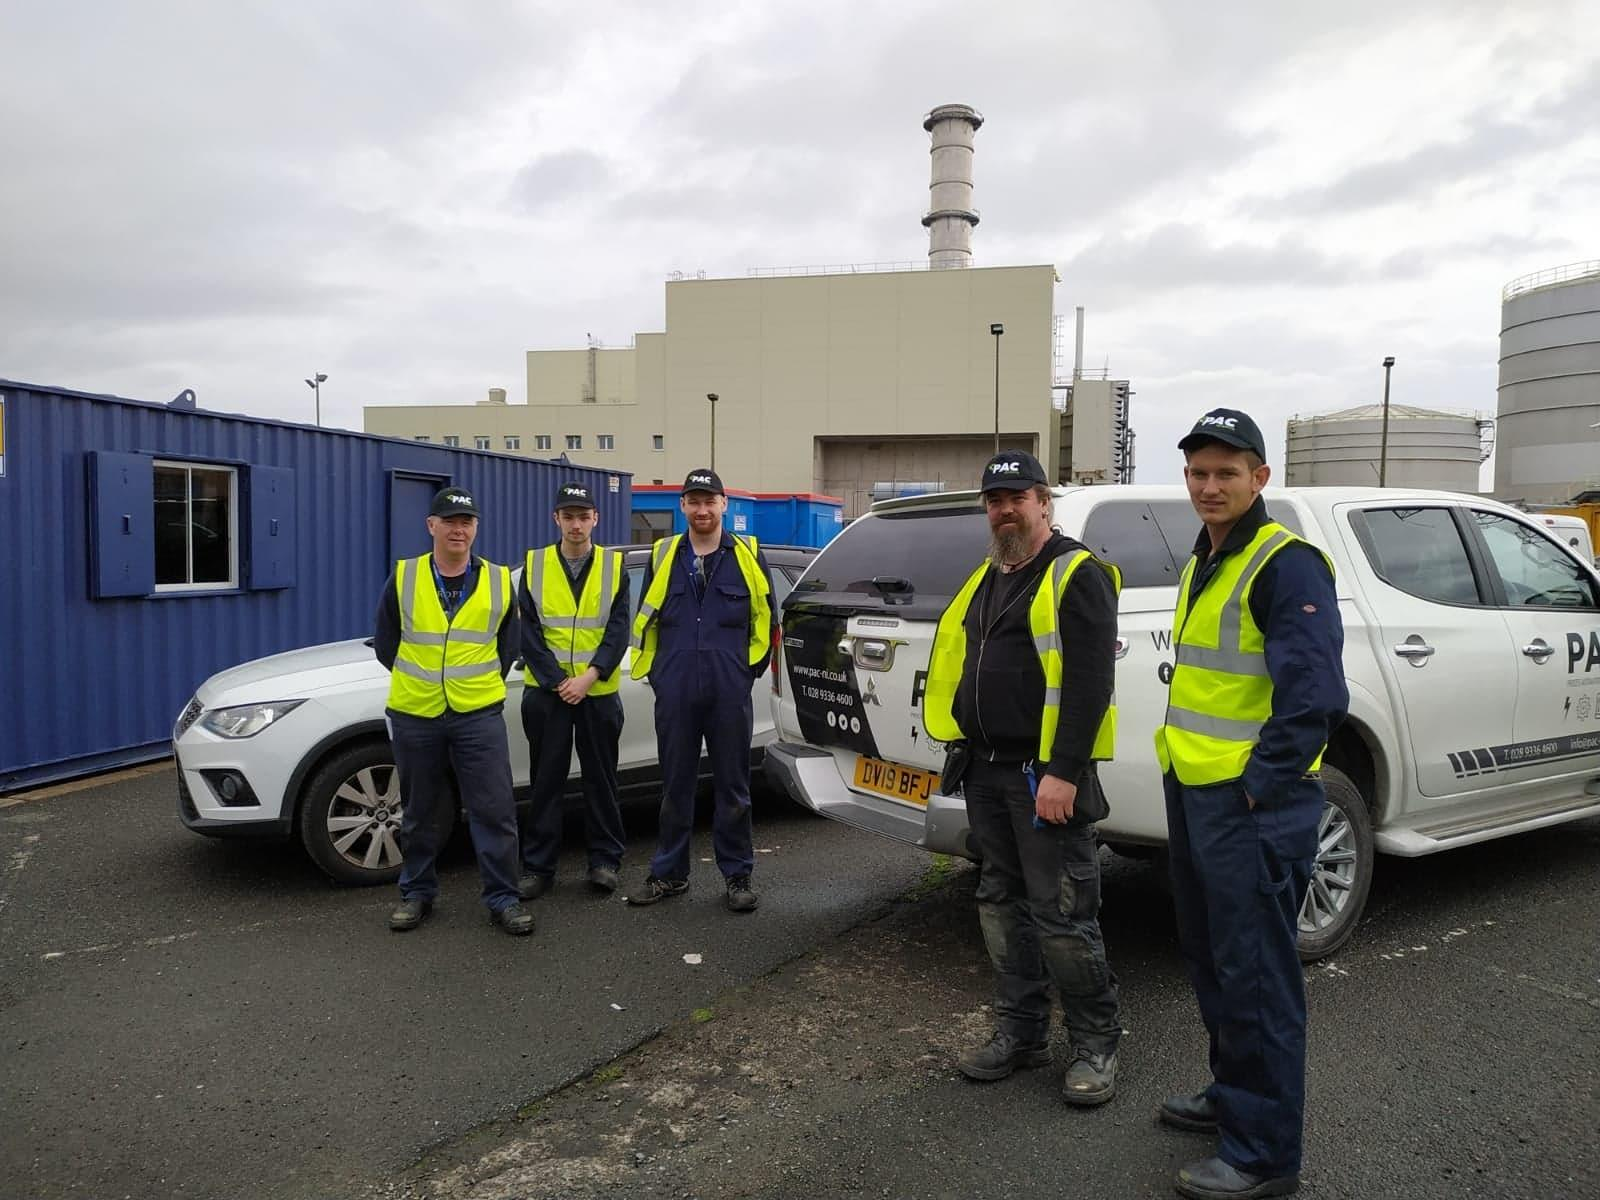 PAC Calibrations Northern Ireland Power Station